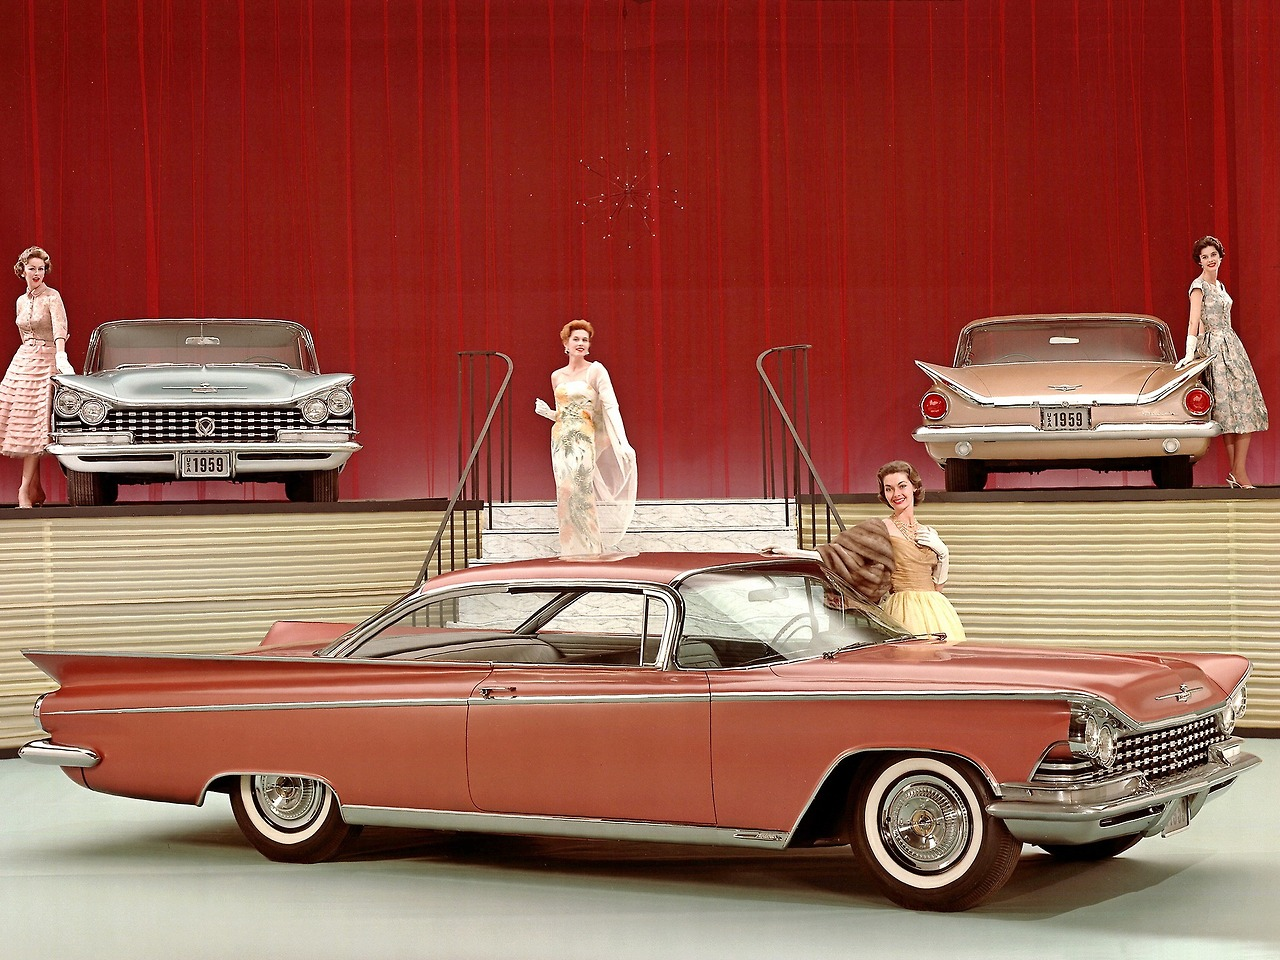 1959 Buick Invicta 2-door Hardtop 1959